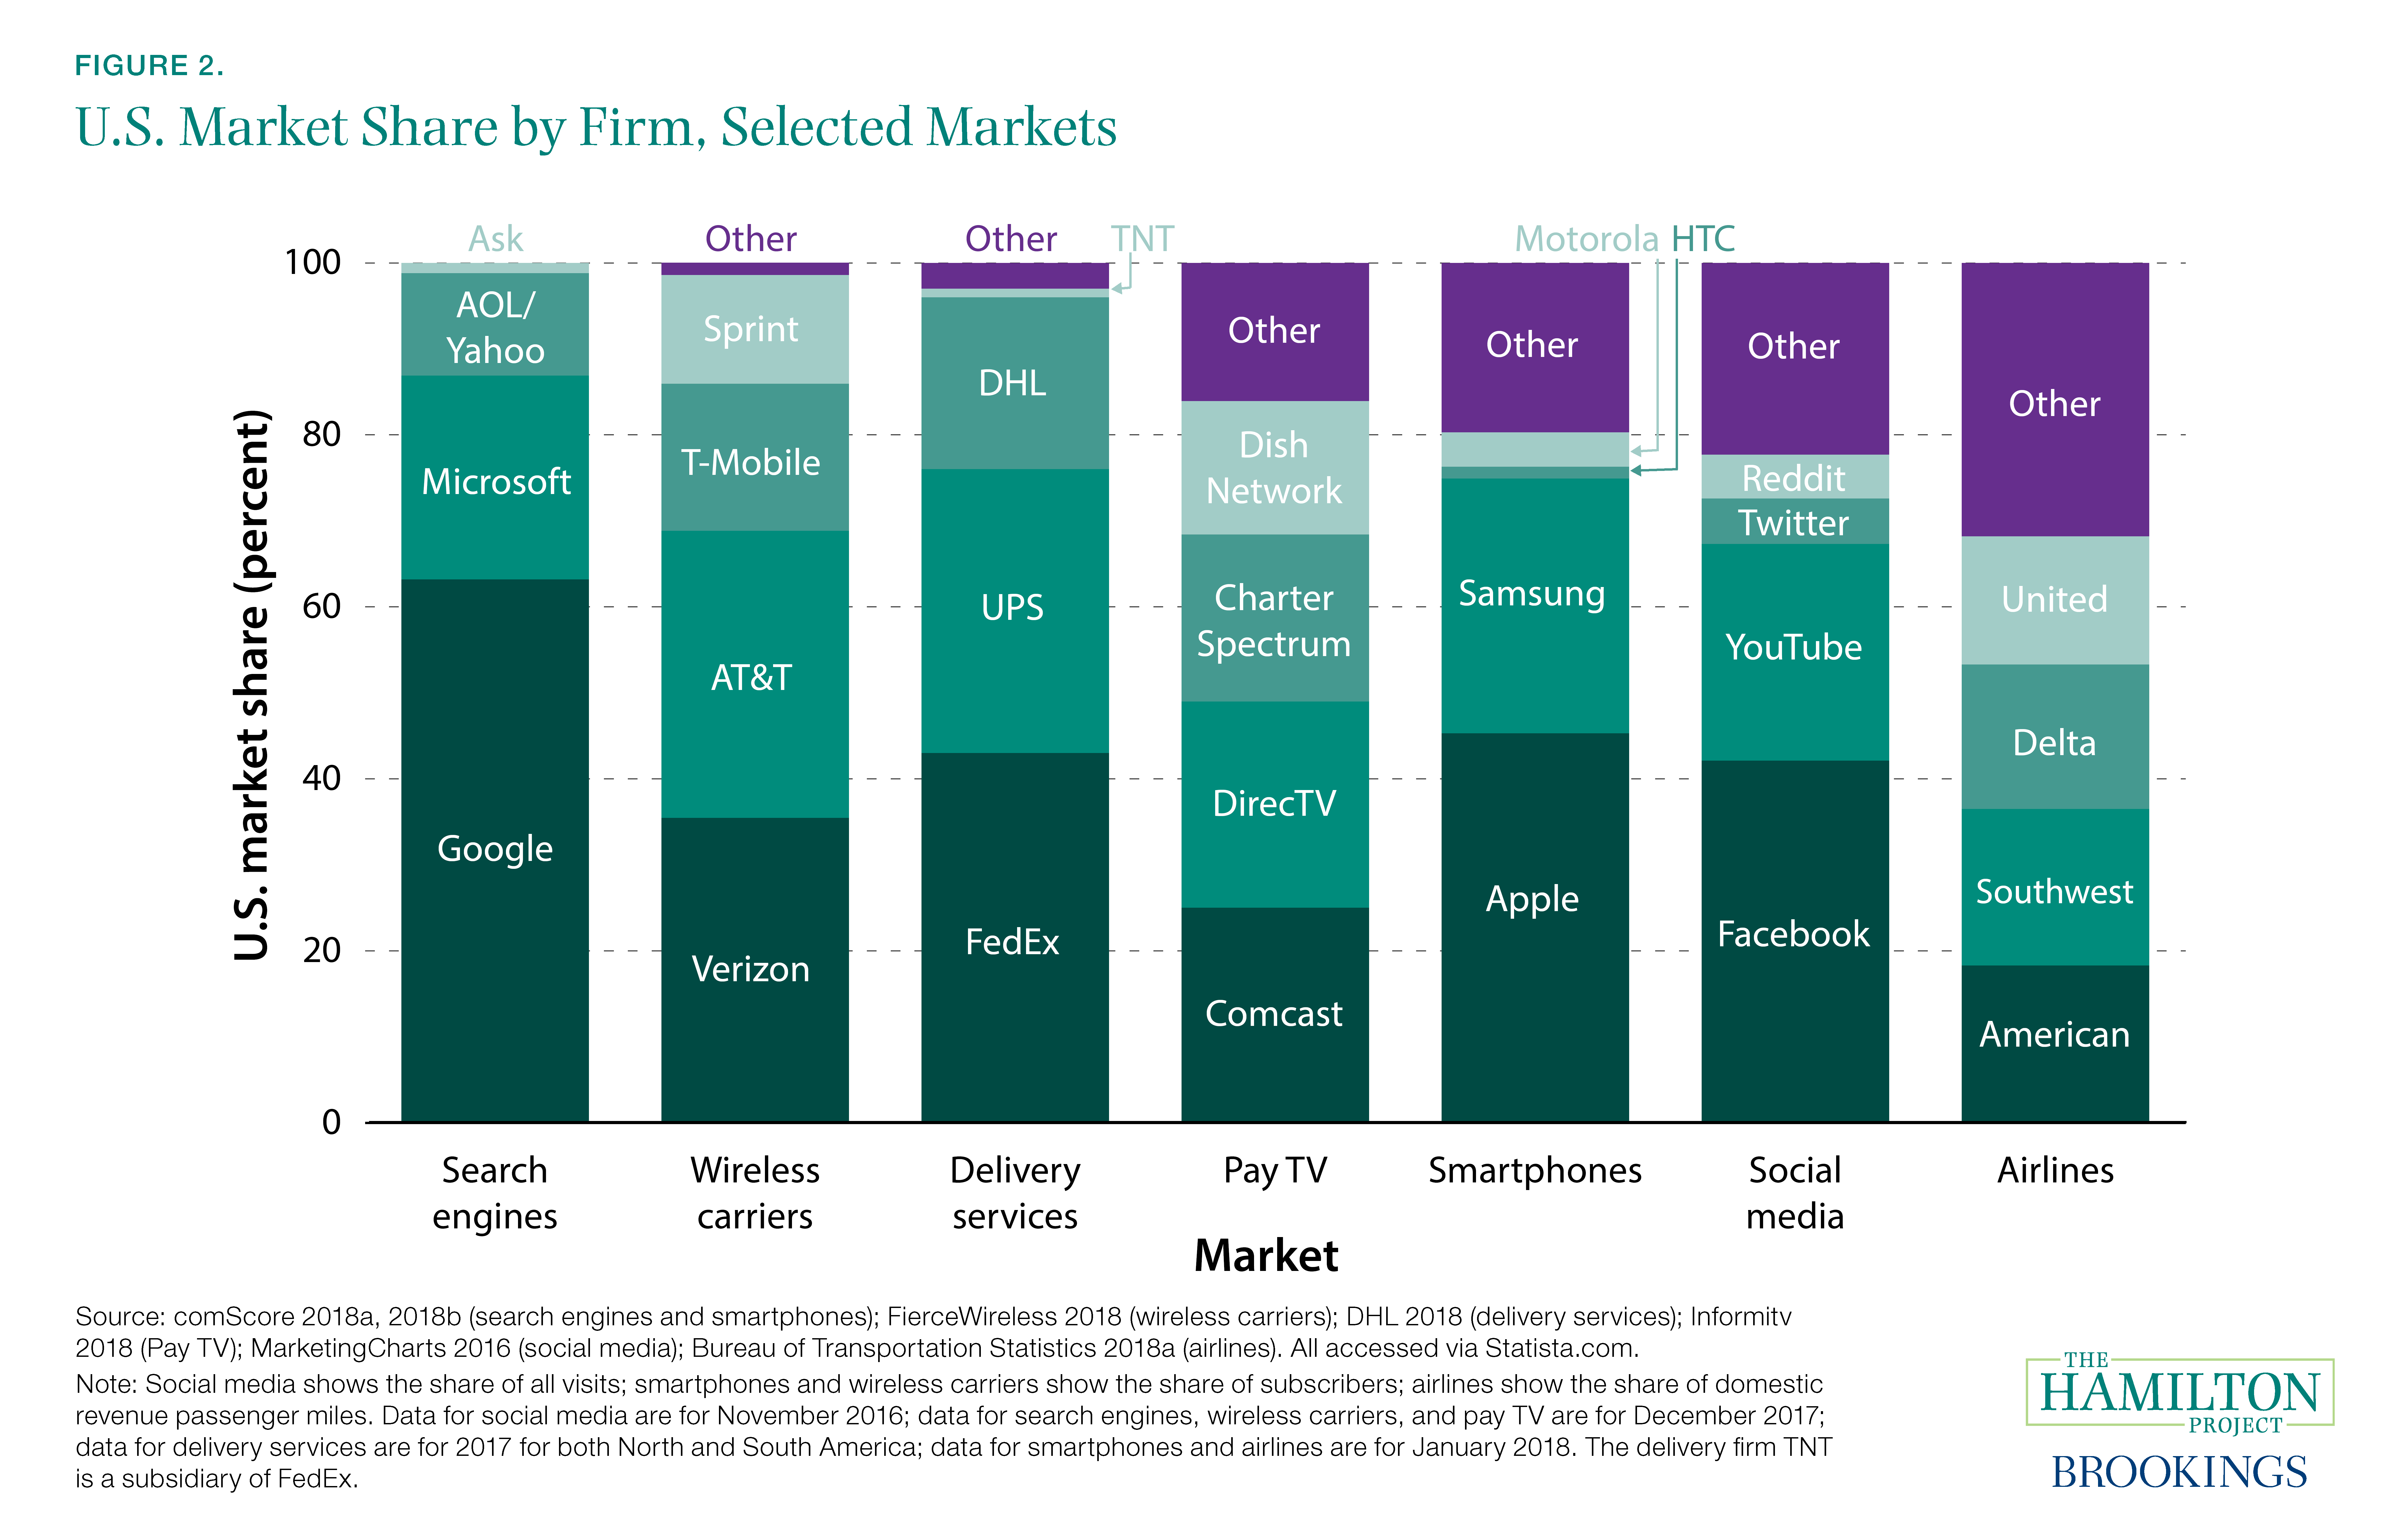 Figure 2. U.S. Market Share by Firm, Selected Markets